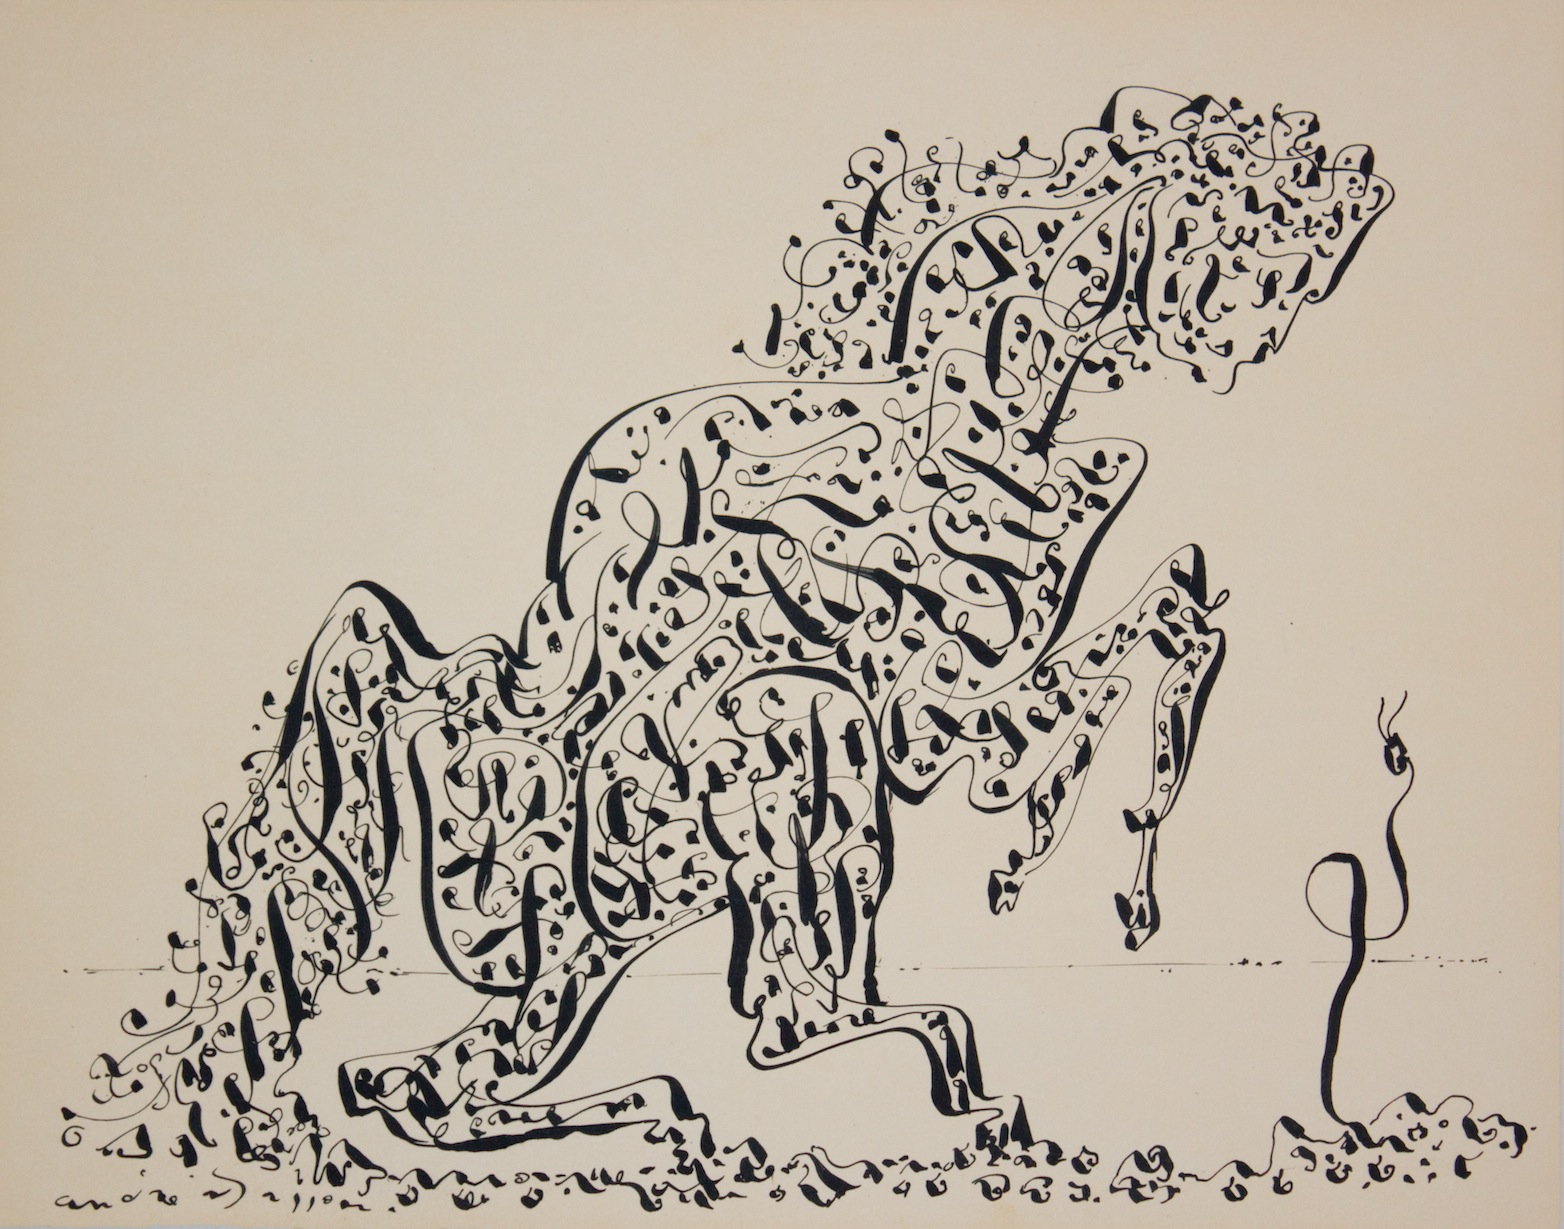 André Masson - La Chimere Au Serpent - Lithograph on paper - 1944